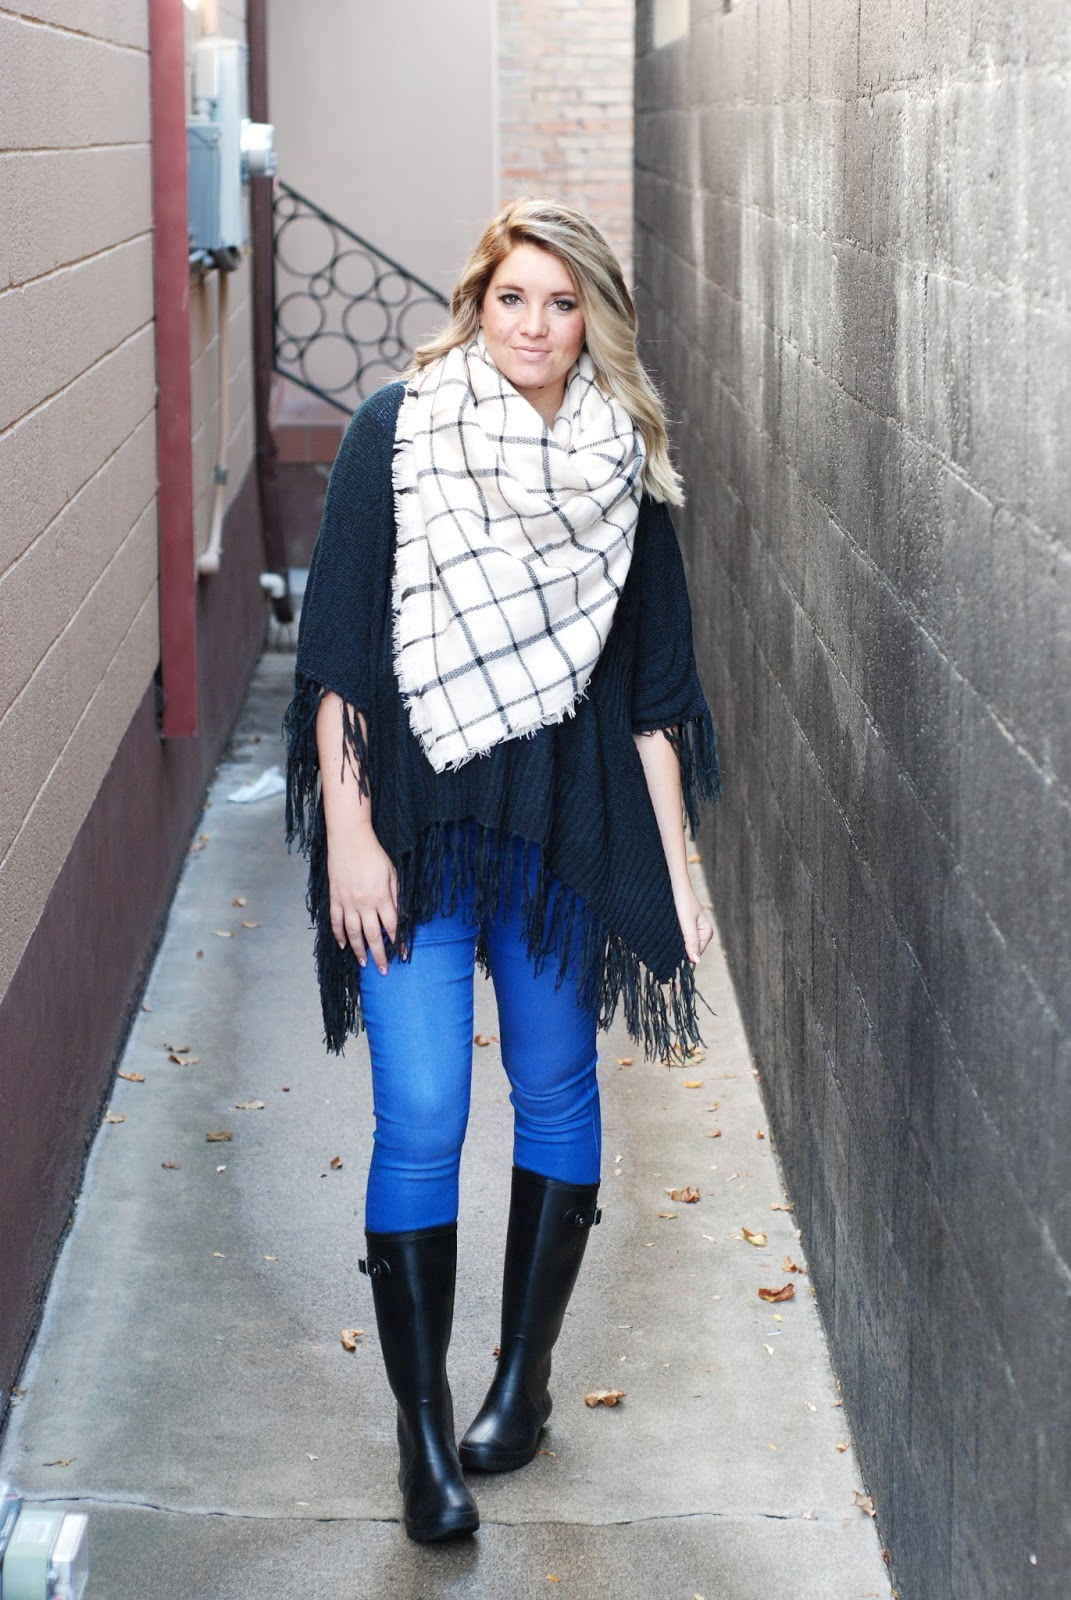 BB Styled, Rainy Day Outfit, Poncho, Blanket Scarf